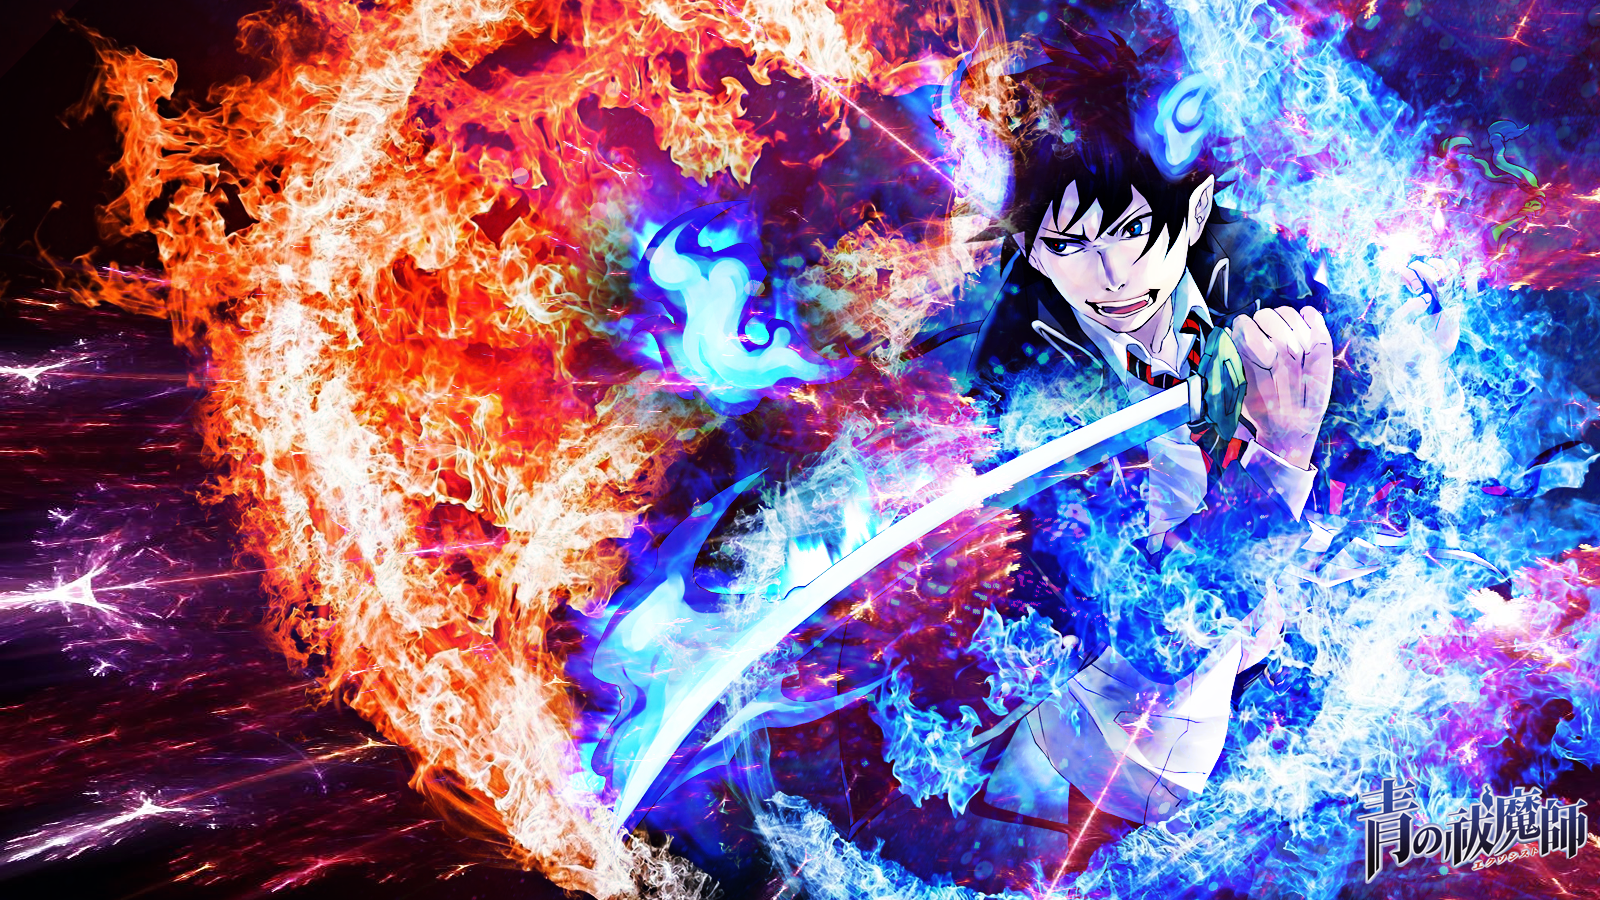 Blue Exorcist Wallpaper by skeptec 1600x900